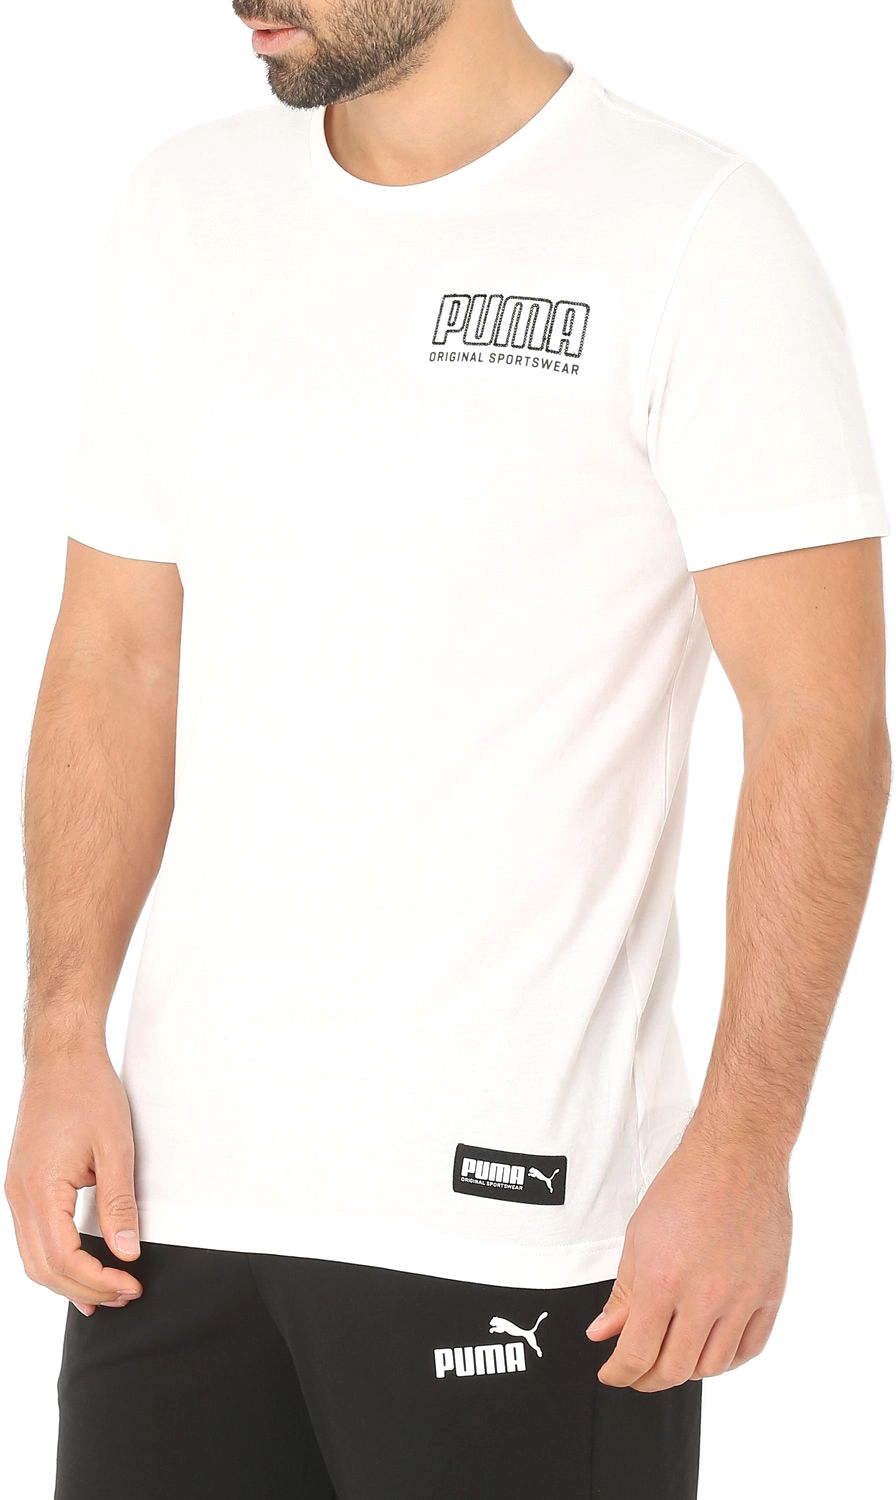 139bcfeb854eb Футболка Puma Athletics Tee 85410602 S Белая (4060978726551)